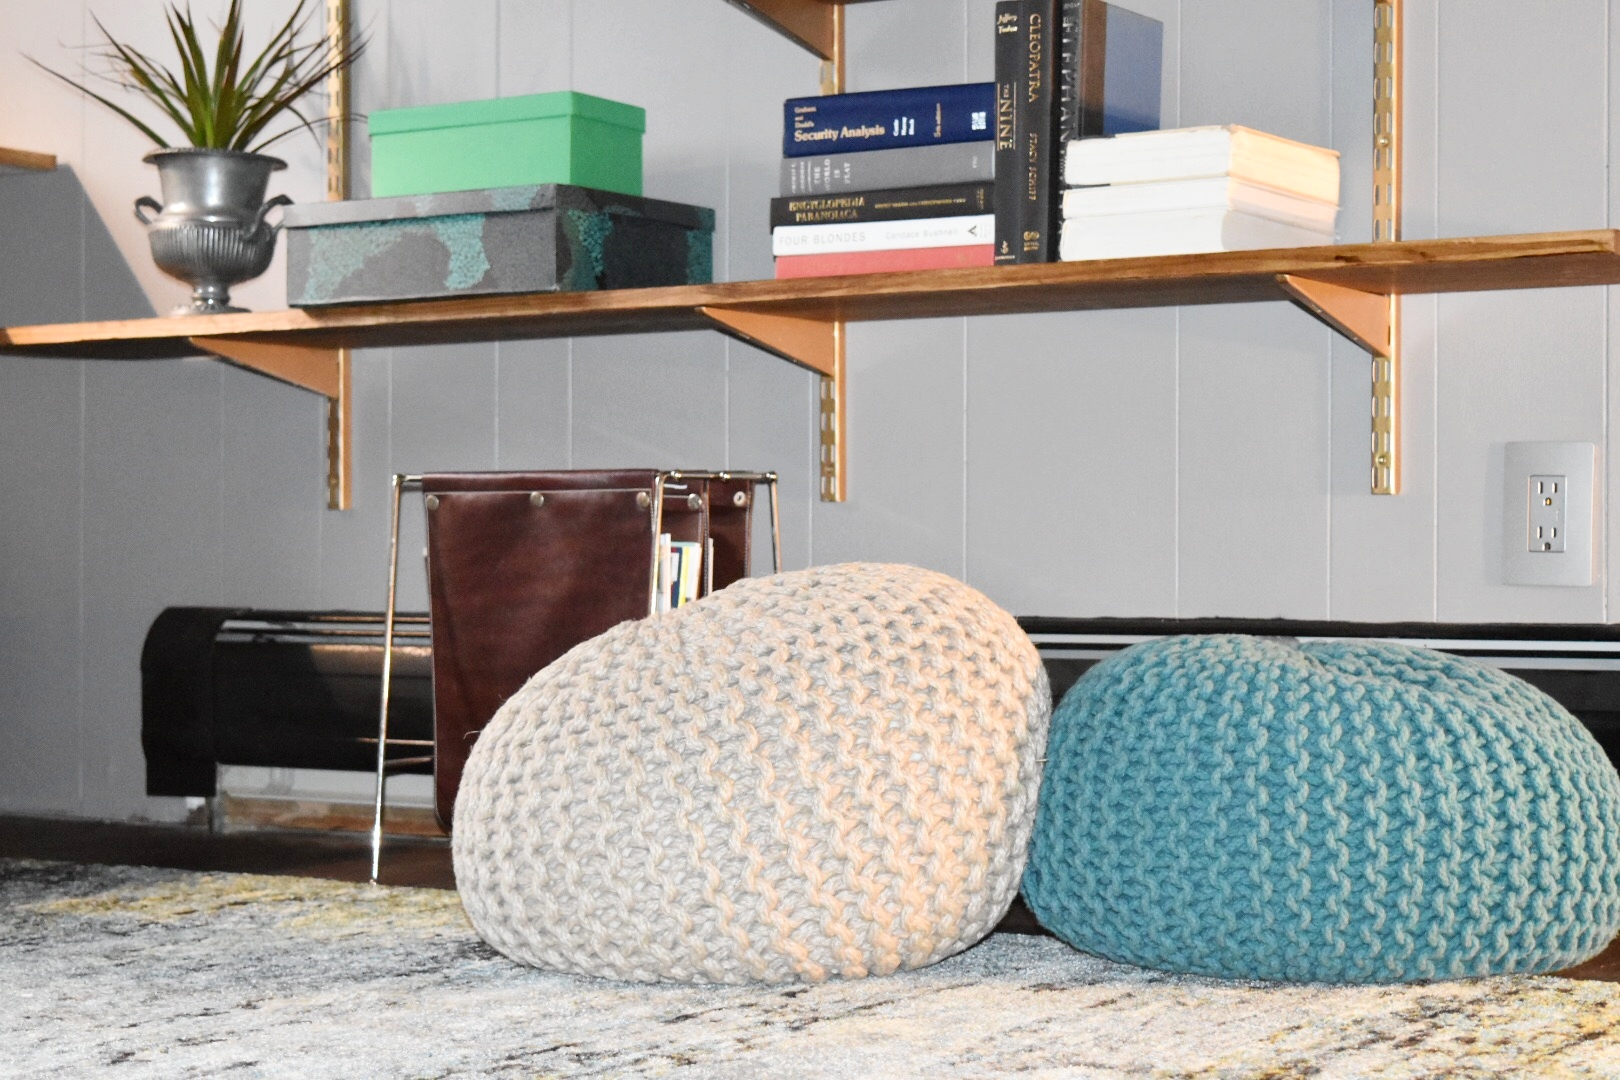 The  Rugs USA rug  incorporated every color in the space, tying things together